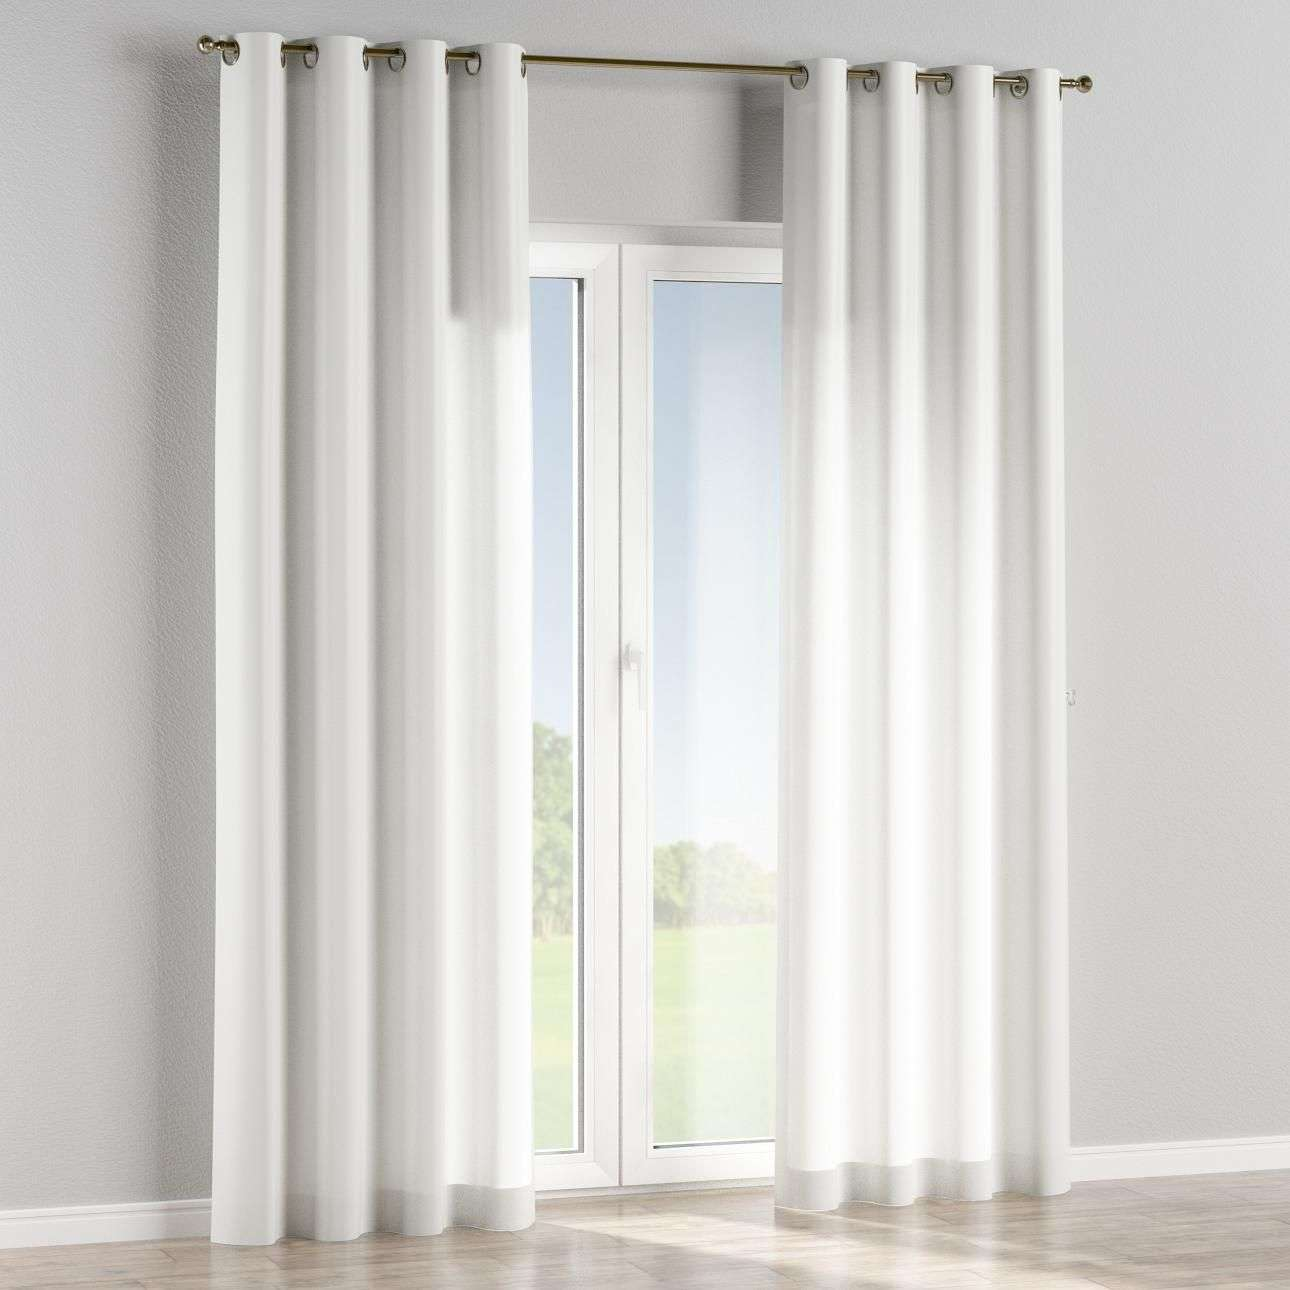 Eyelet lined curtains in collection New Art, fabric: 140-26